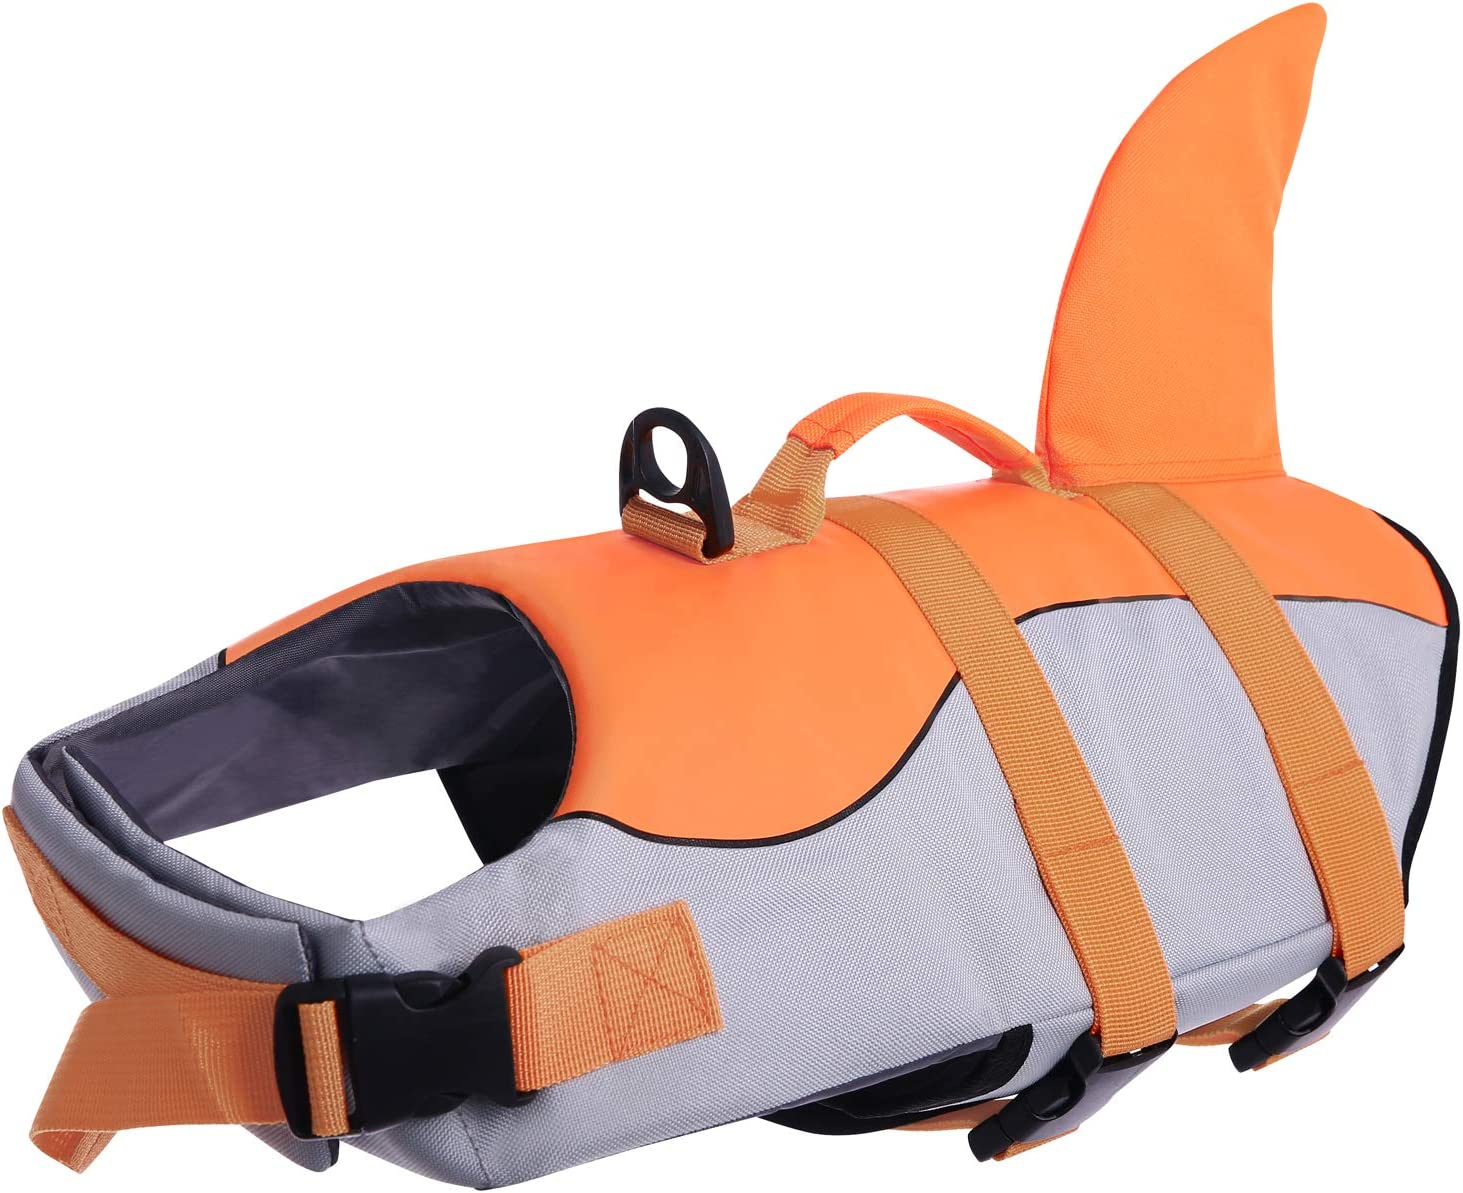 ASENKU Dog Life Jacket Ripstop Pet Floatation Vest Saver Swimsuit Preserver for Water Safety at The Pool Beach Boating